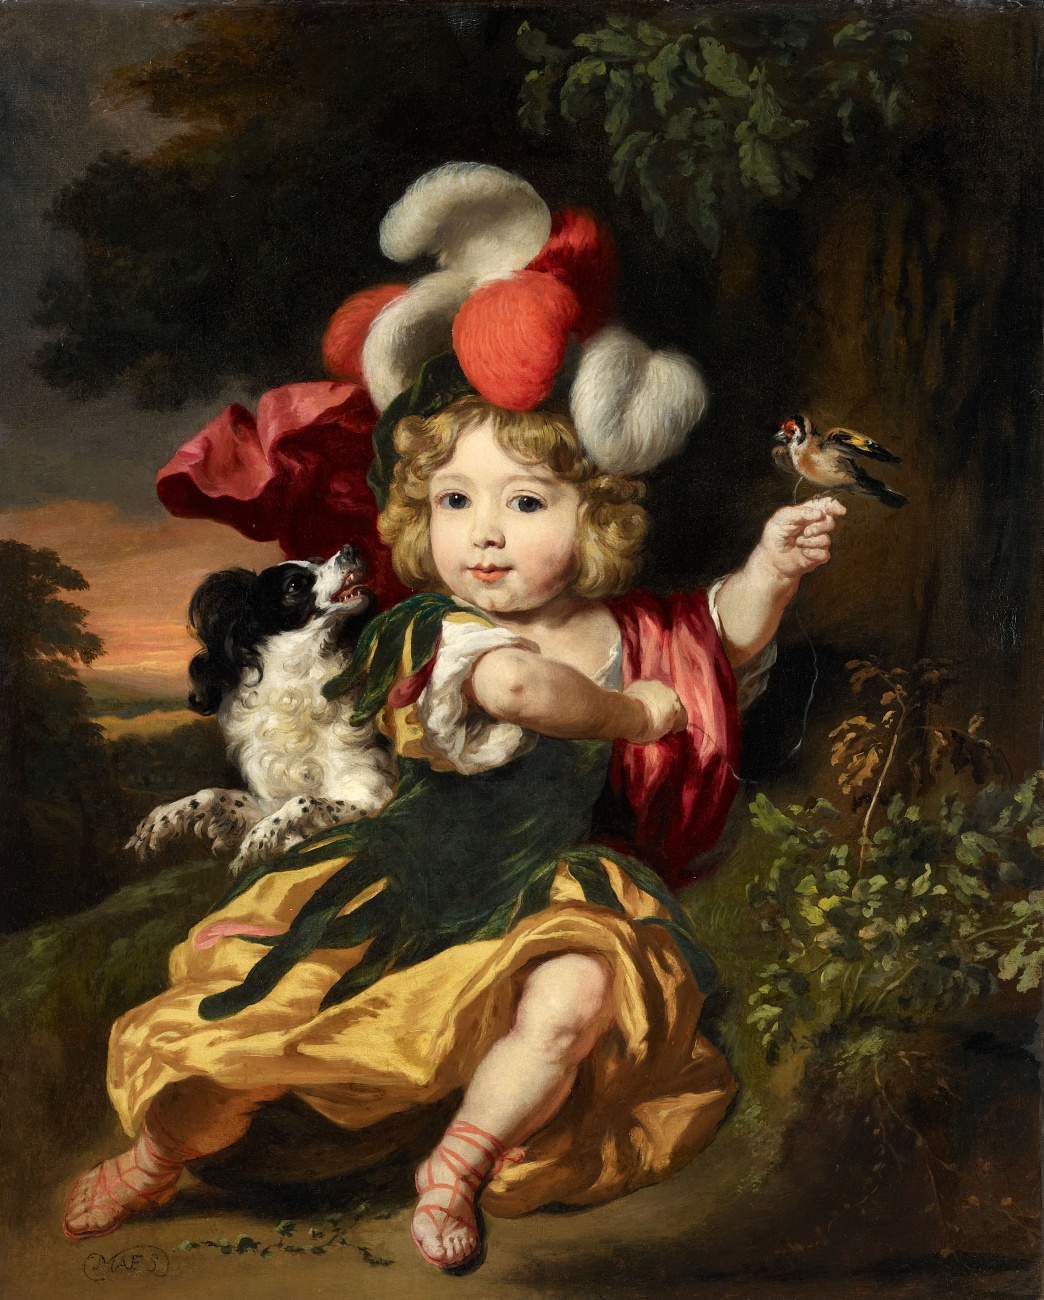 OC_1660 ca Nicolaes Maes (Dutch artist, 1634-1693) 0Boy in a Classical costume with a finch on his hand and a dog by his side private coll